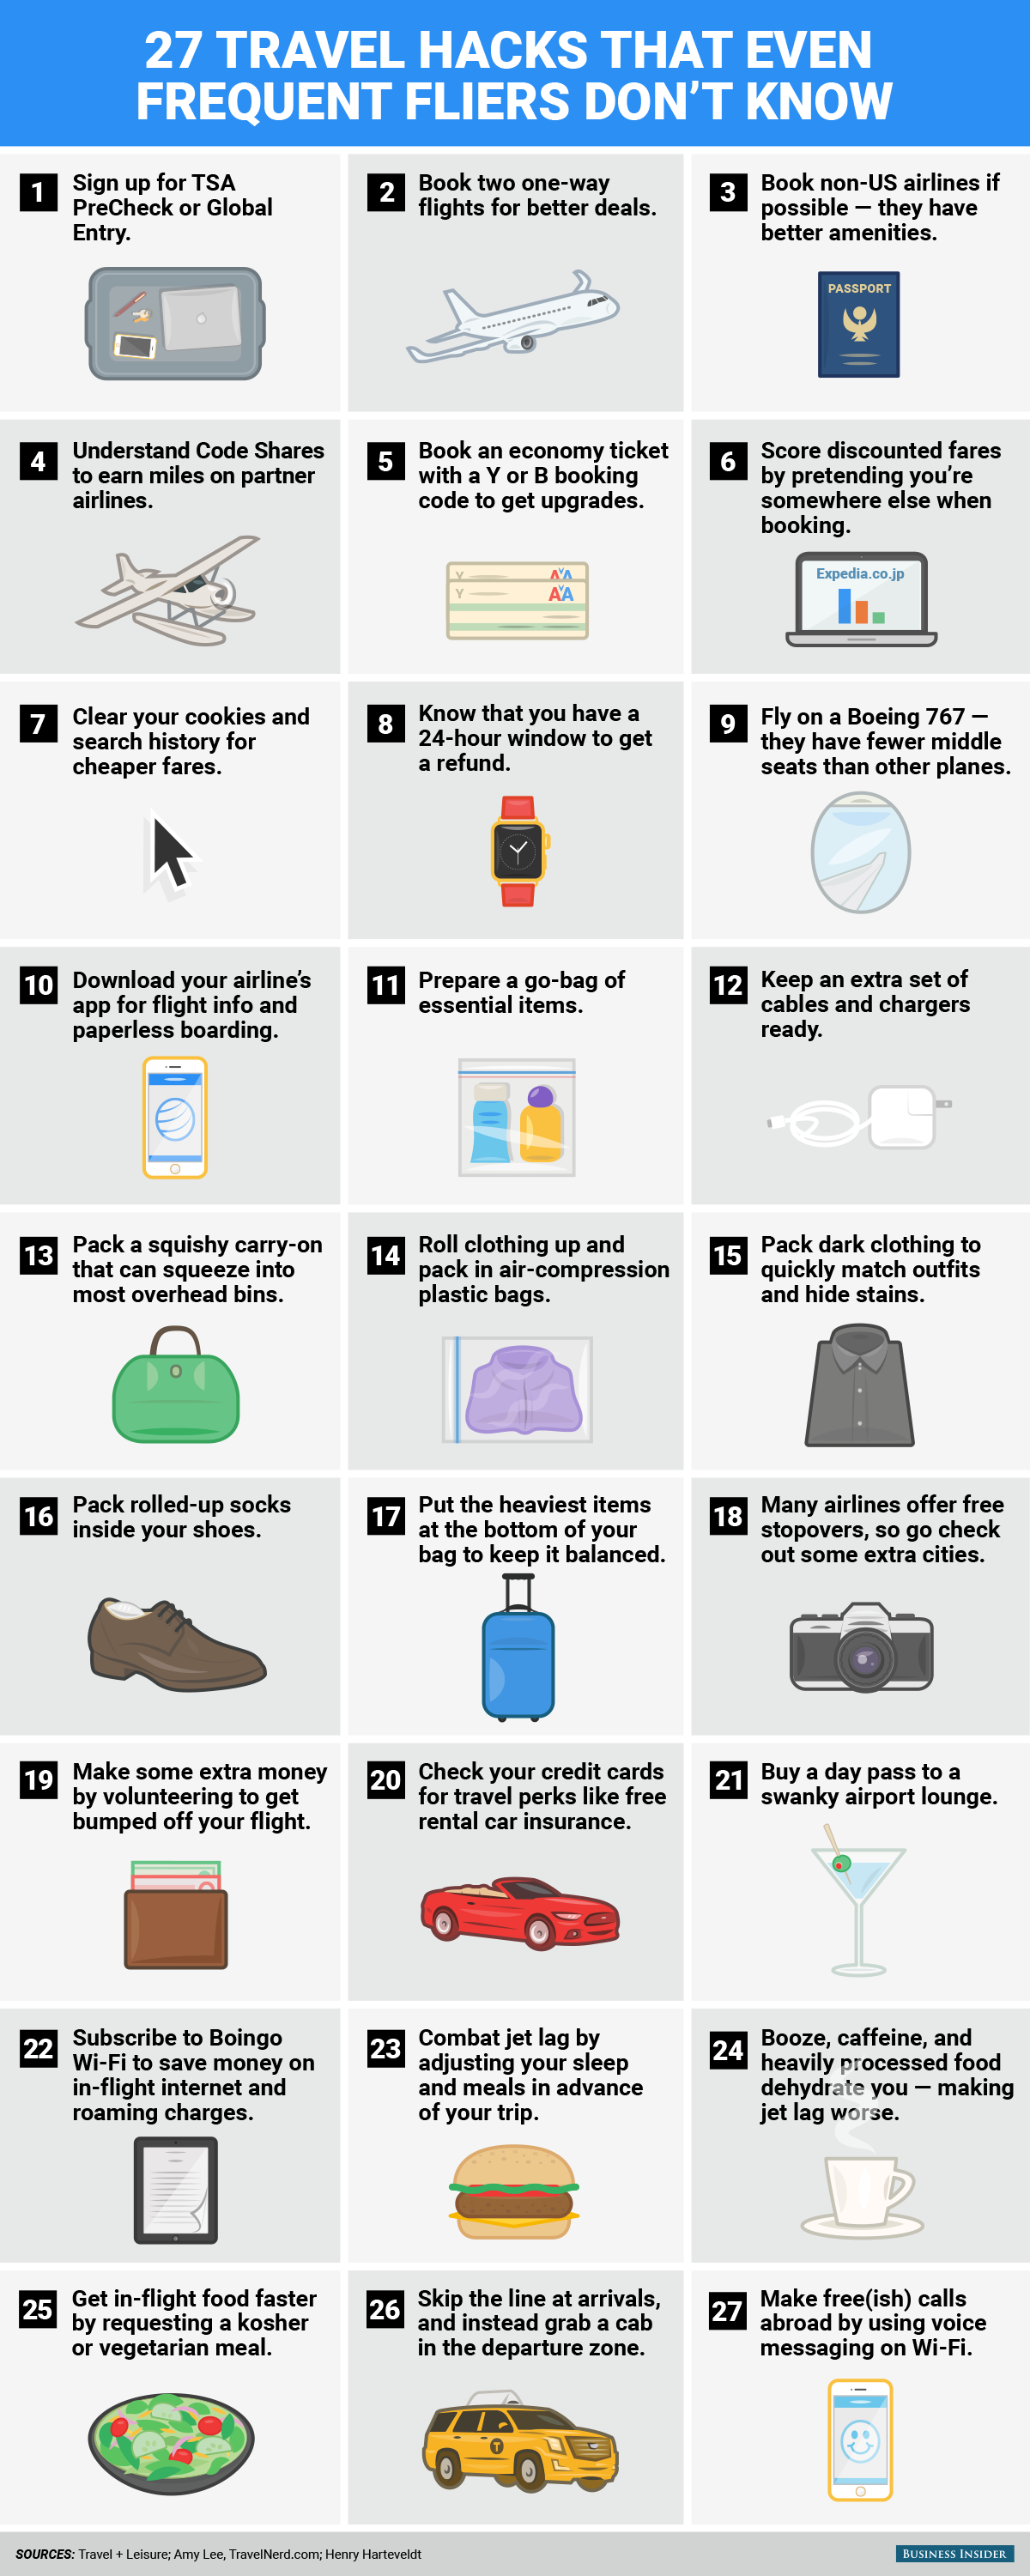 bi_graphics_27 travel hacks that even frequent fliers don't know_02.png